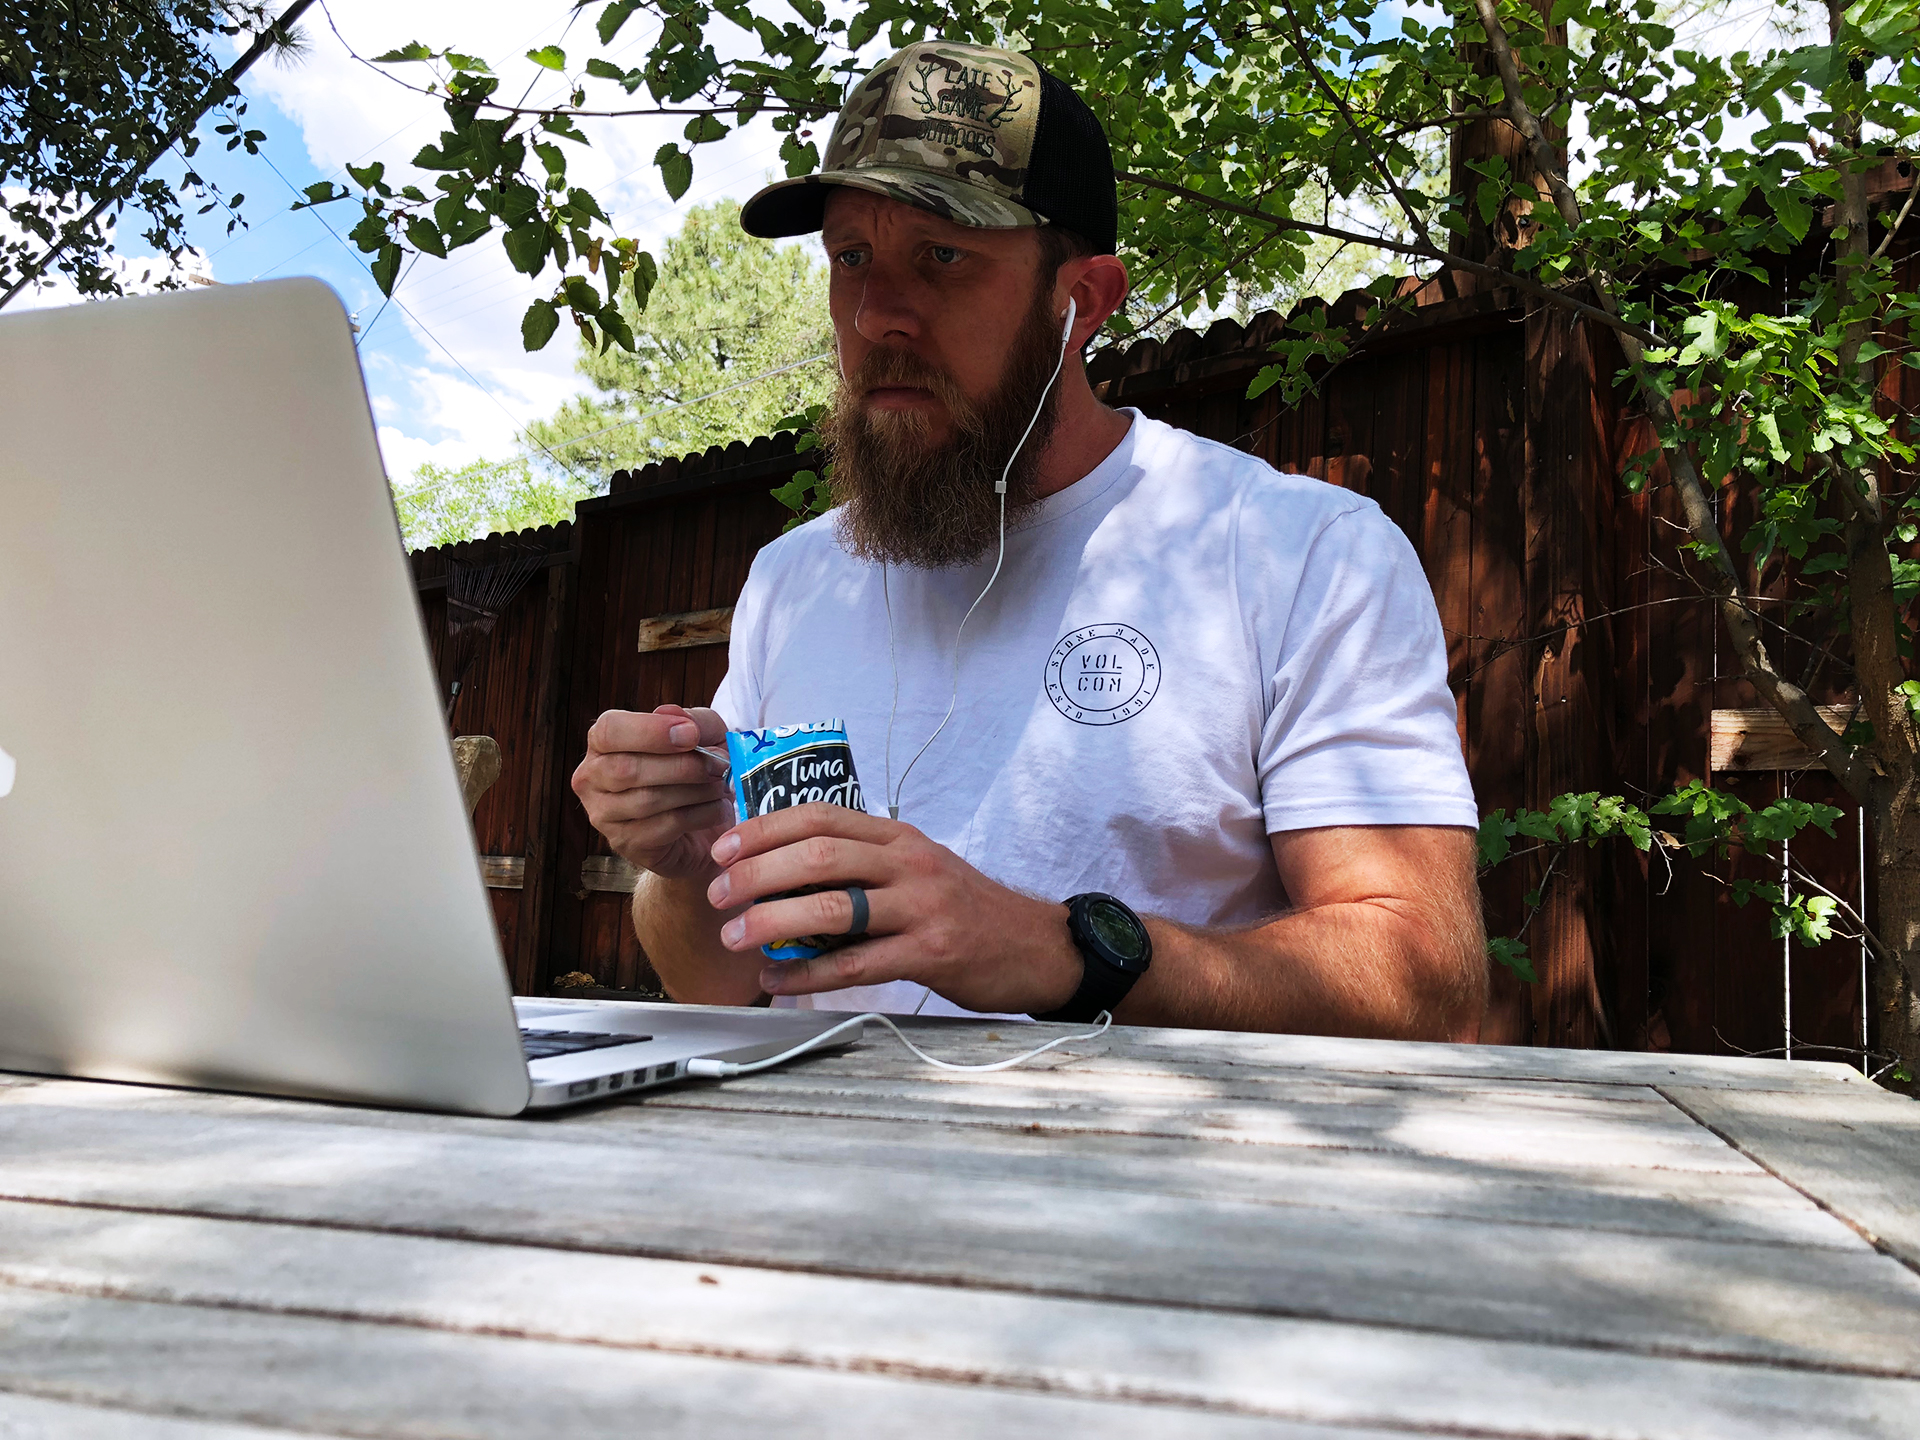 You can't really keep typing while eating lunch anyway…might as well find a nice quiet spot and digest some quality hunting info while you stuff your face!